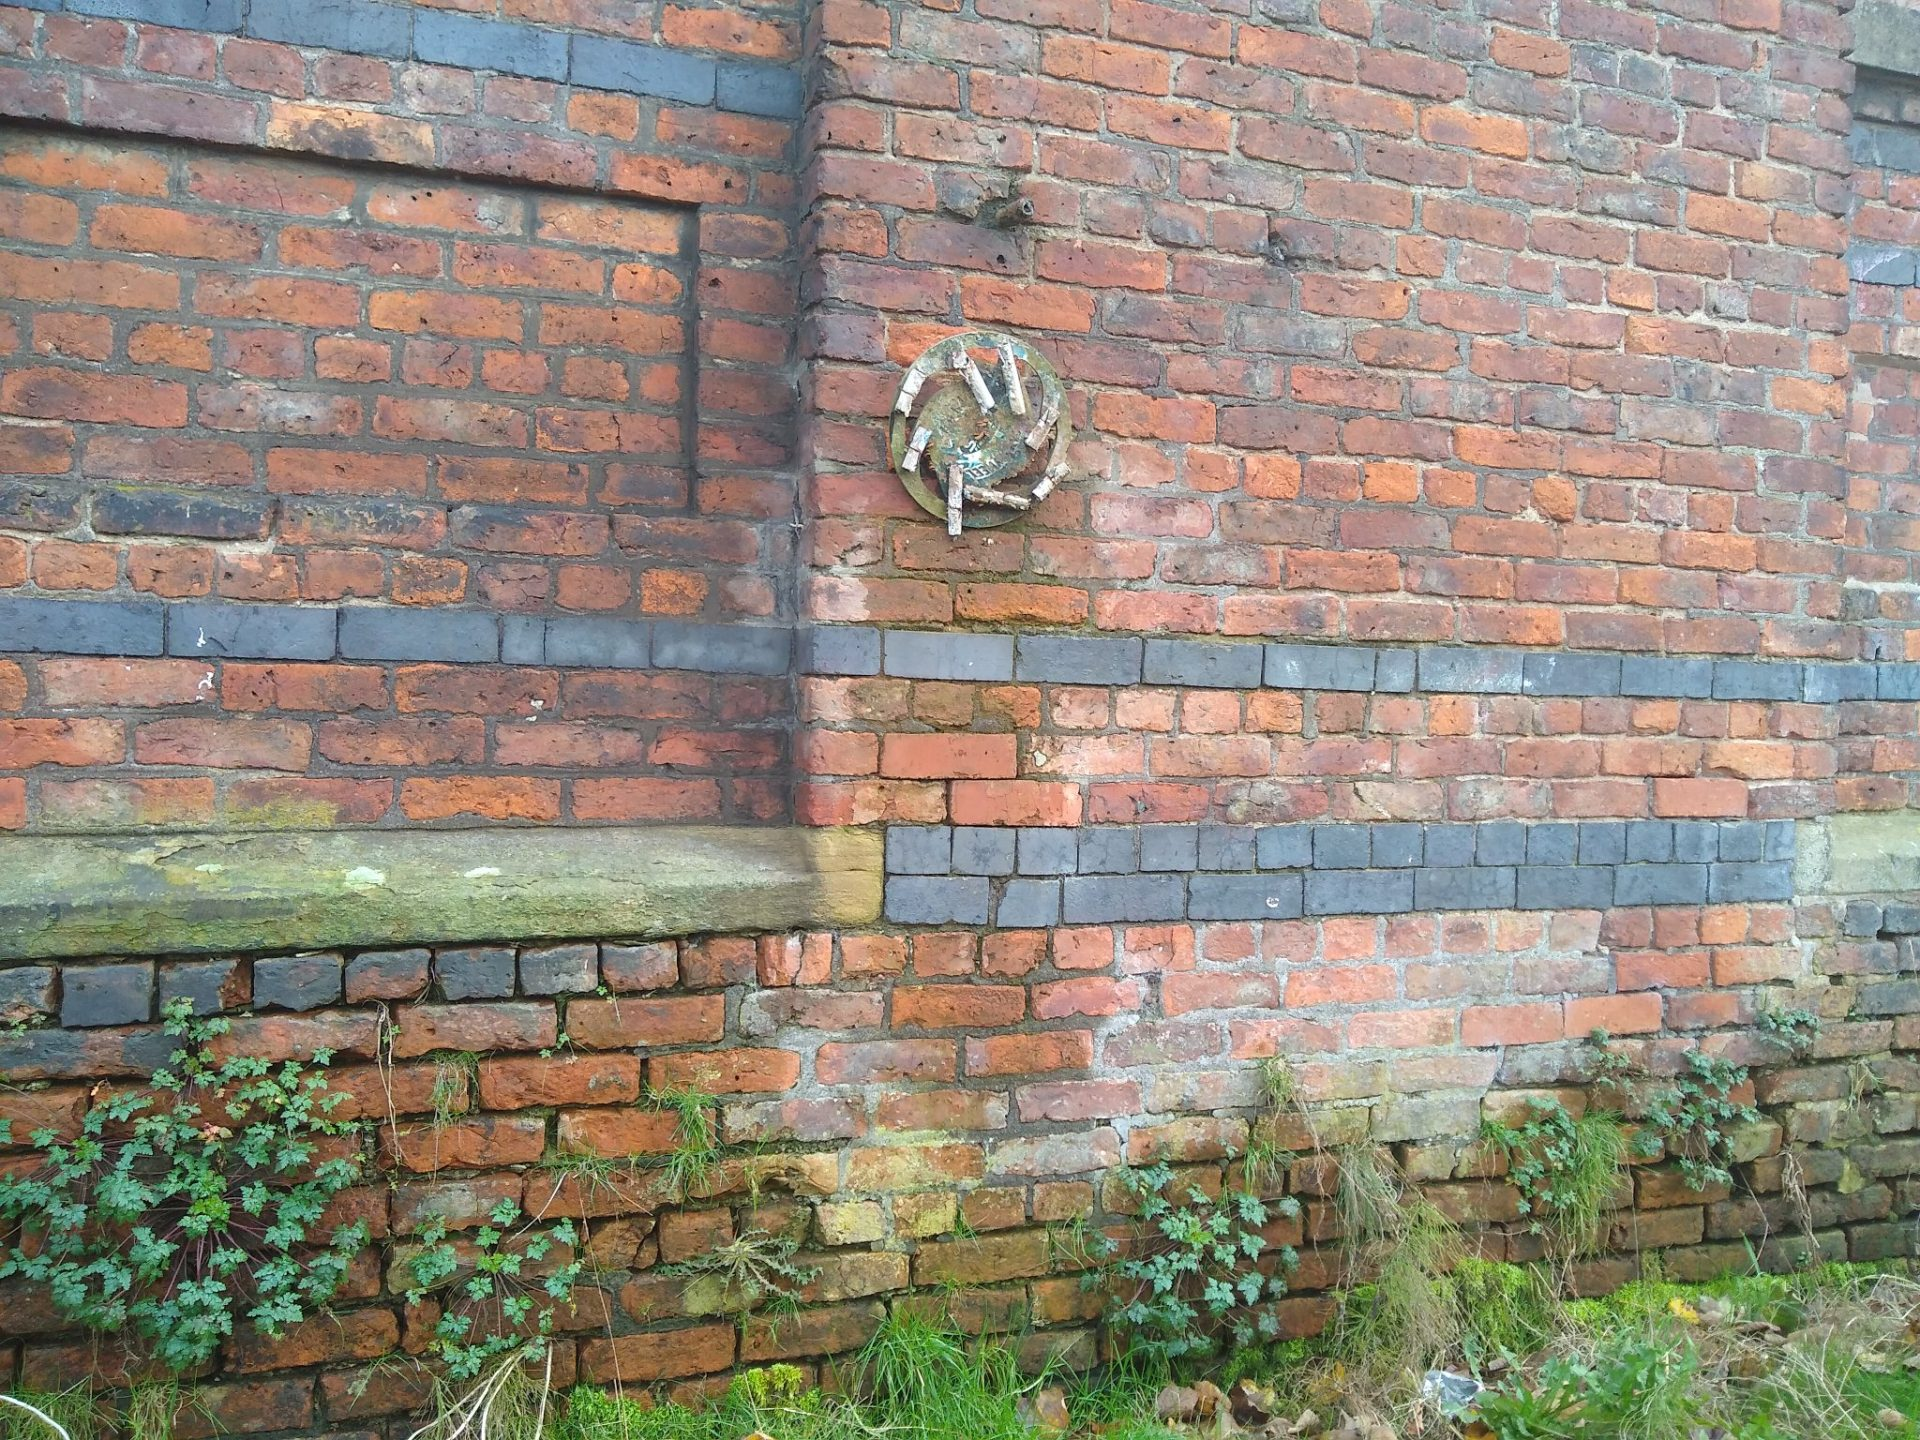 A red brick wall, wild plants and weeds are growing at the bottom, an old Catherine Wheel firework is pinned to the wall